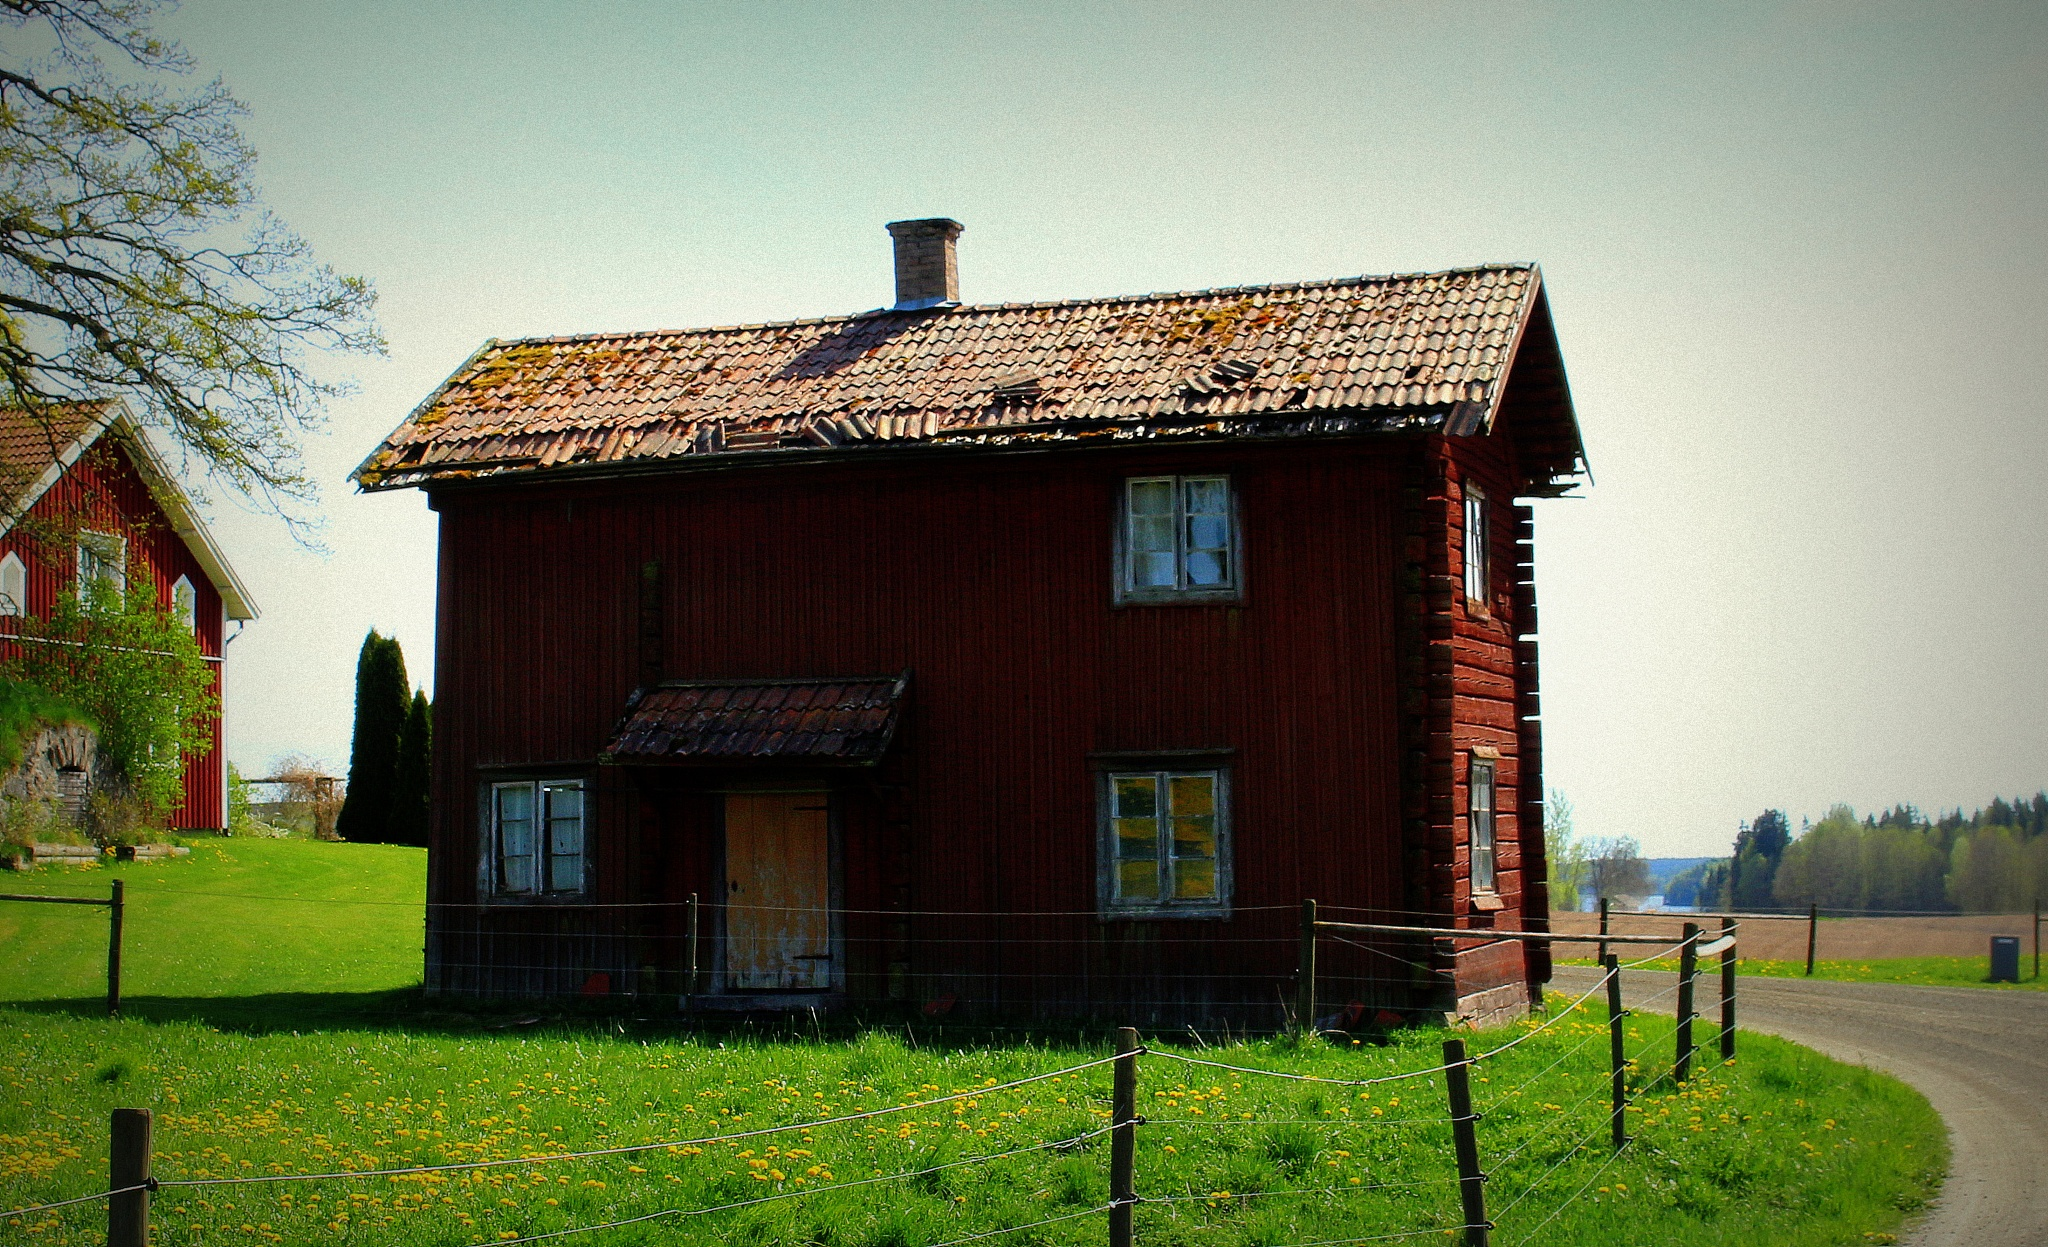 The old house with the old way by susannemkarlsson